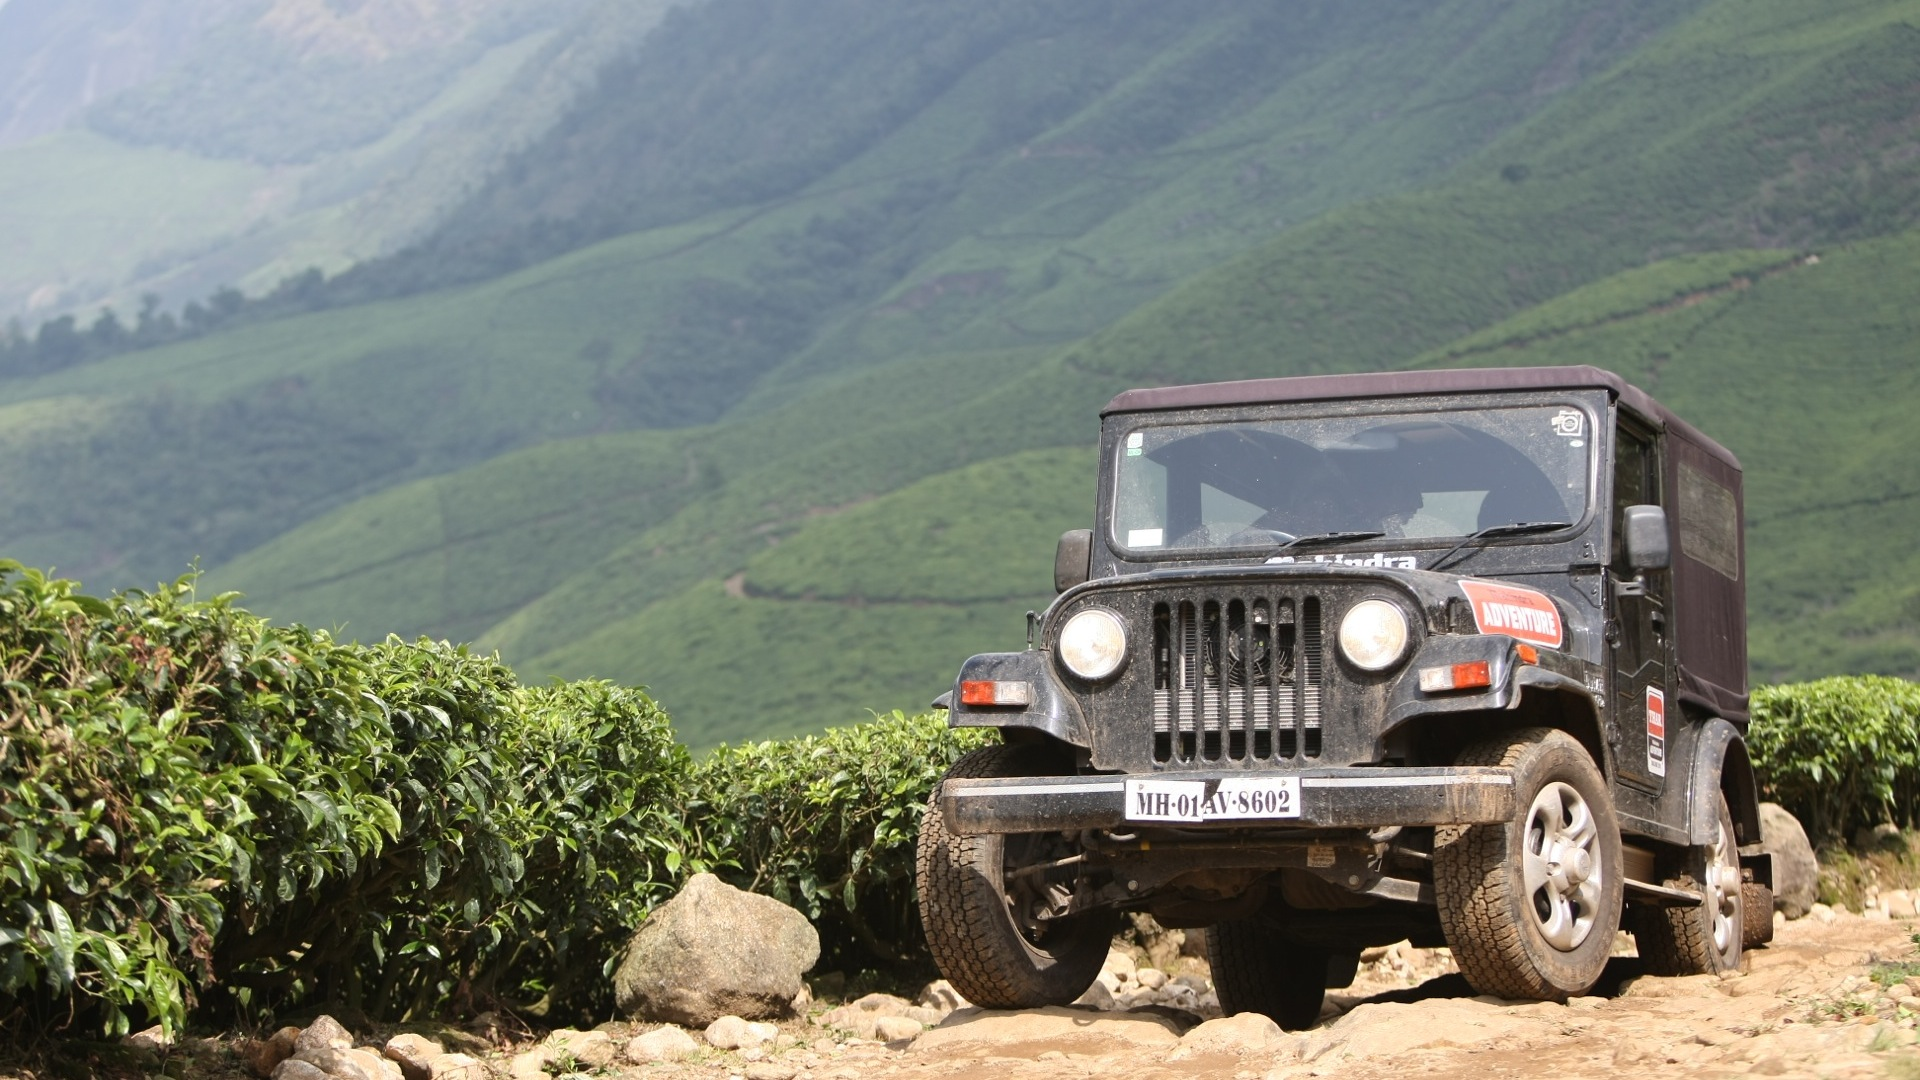 Full Force Diesel >> Mahindra Thar 2015 - Price, Mileage, Reviews, Specification, Gallery - Overdrive